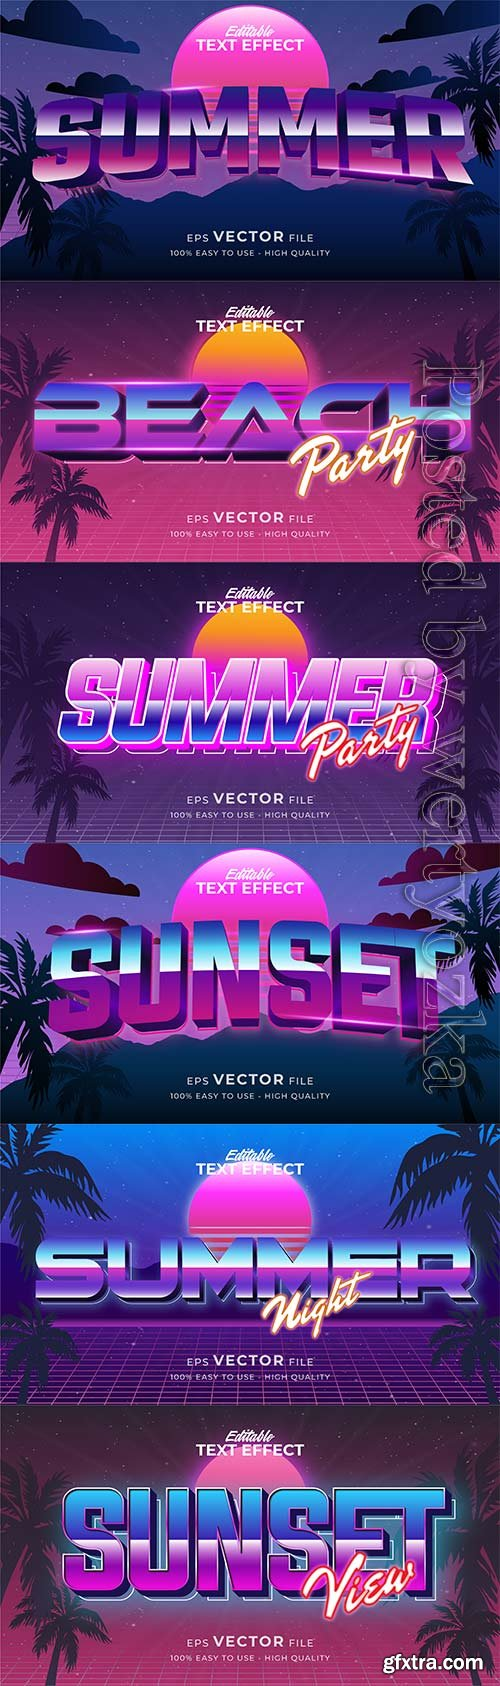 Text style effect, retro summer text in grunge style vol 5